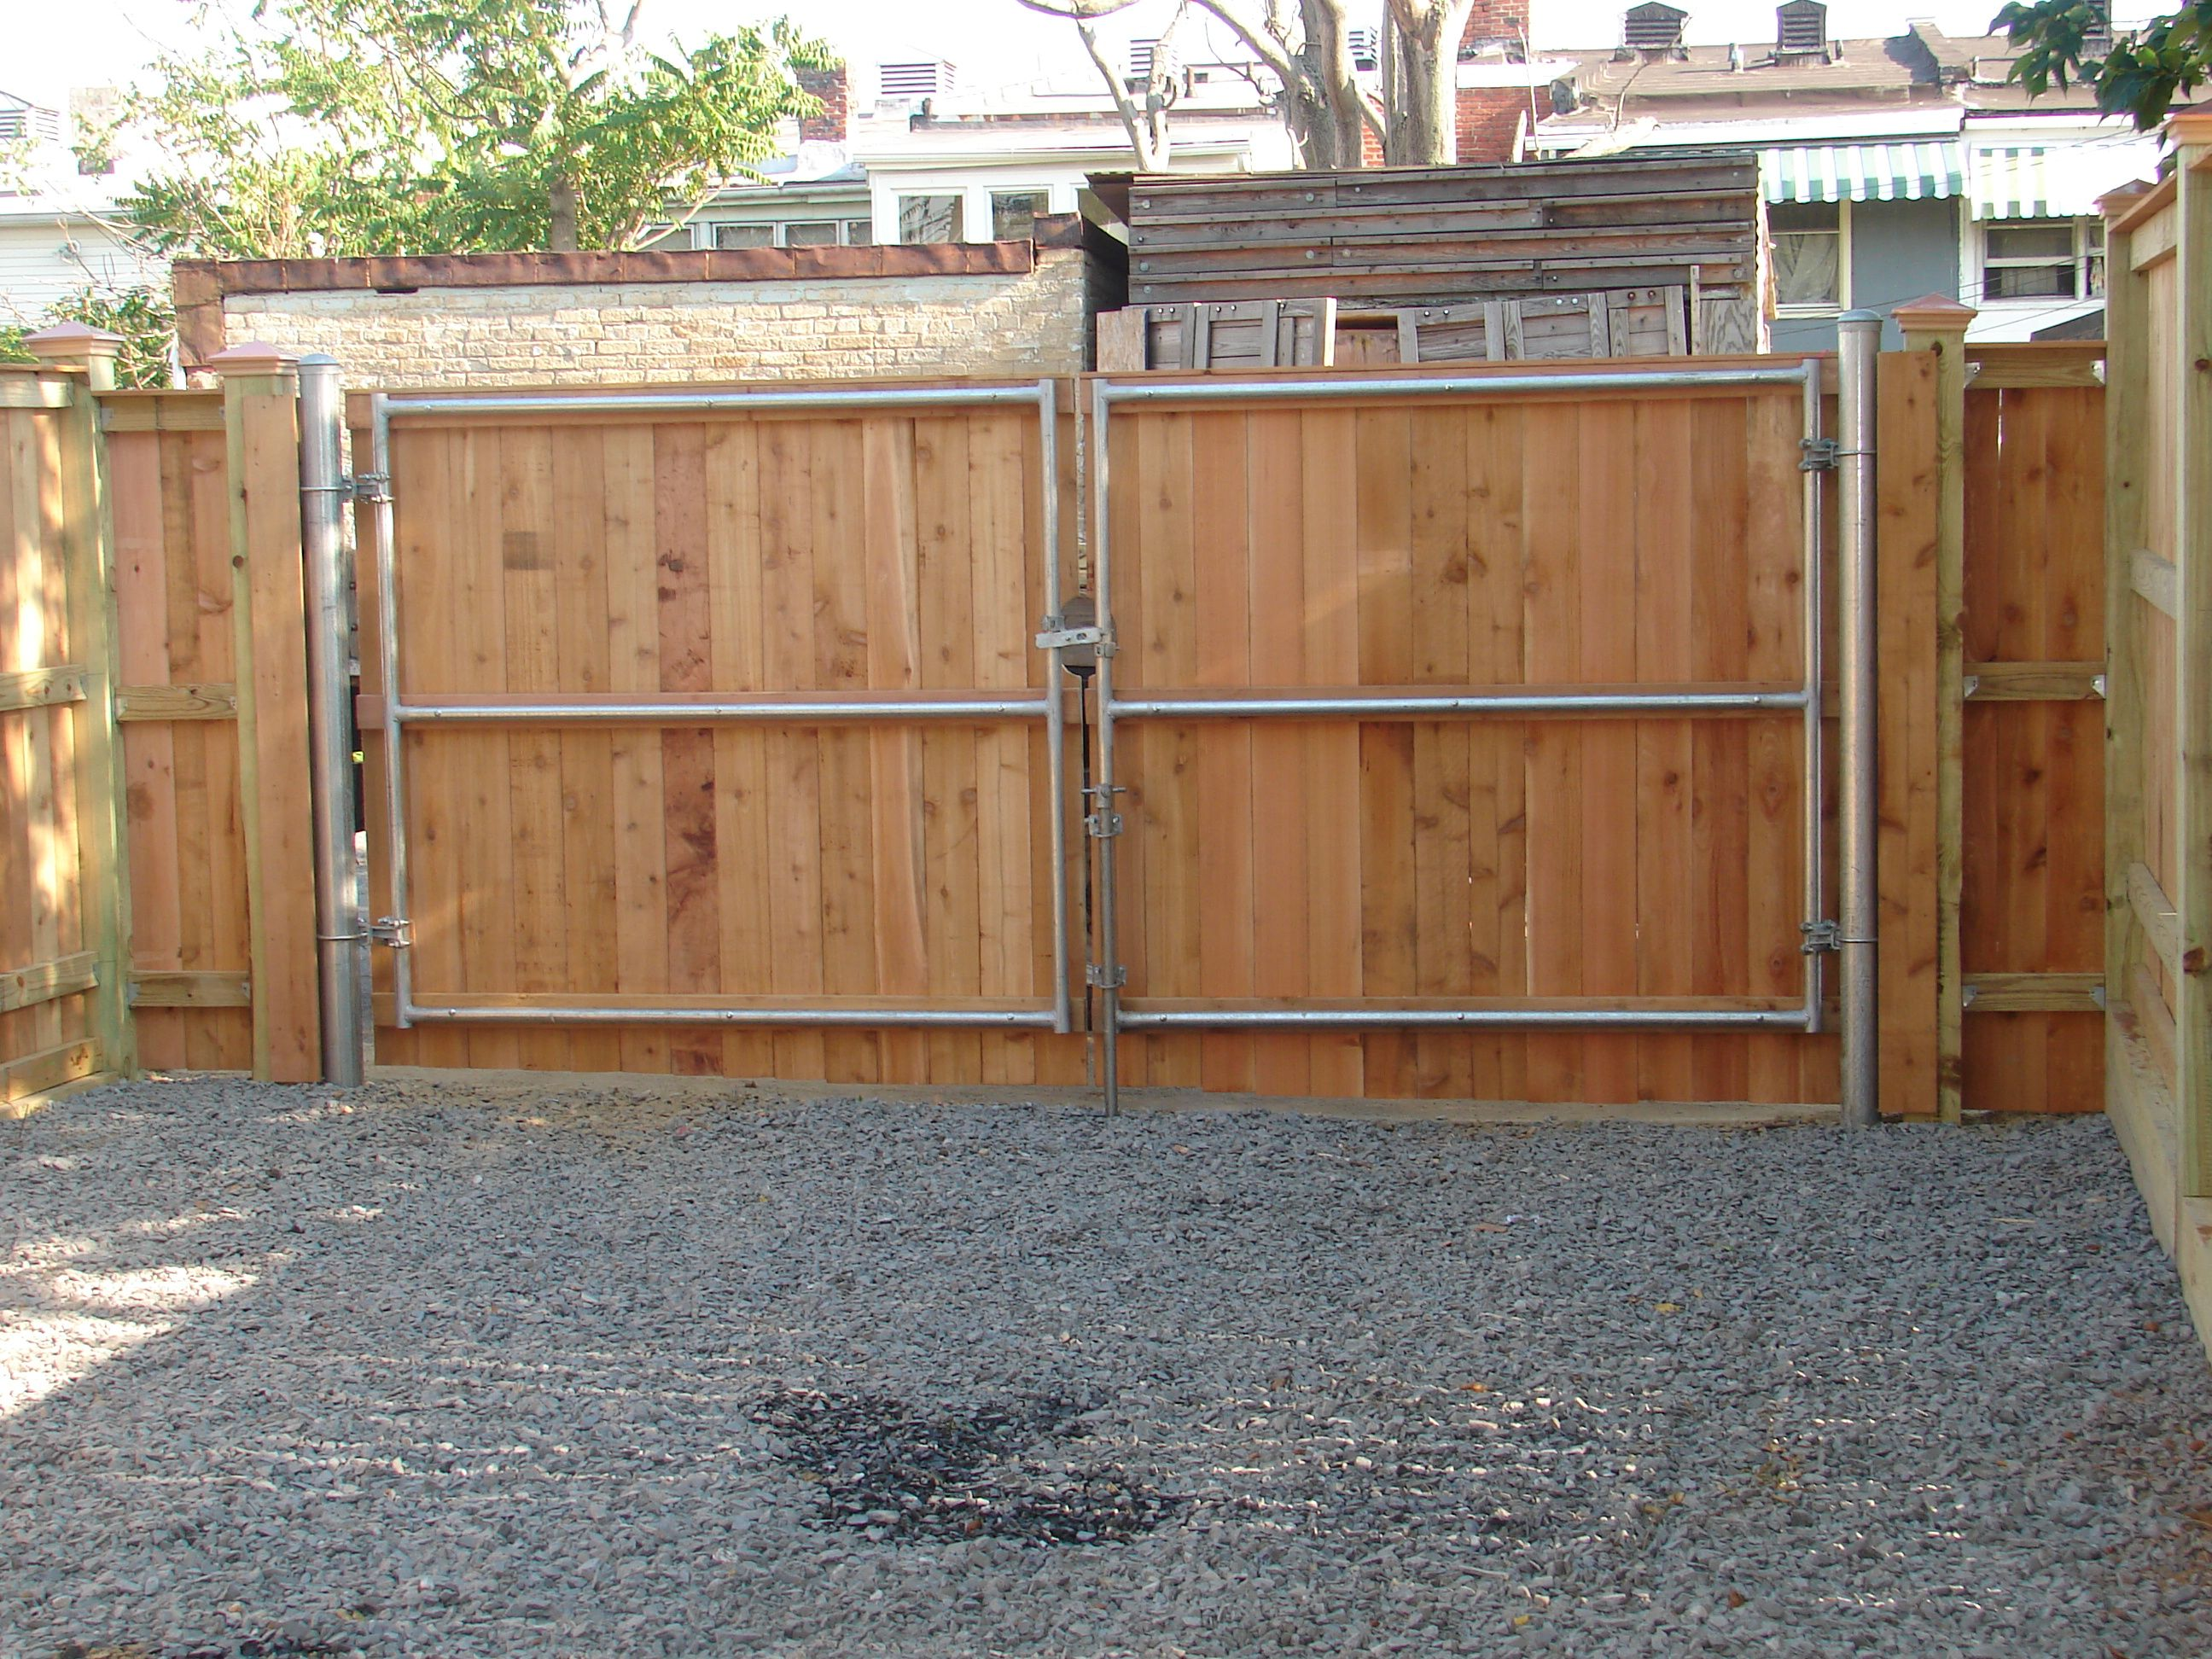 6 Foot Wood Solid Board Double Gate On Metal Frame Chain Link Fence Gate Backyard Fences Fence